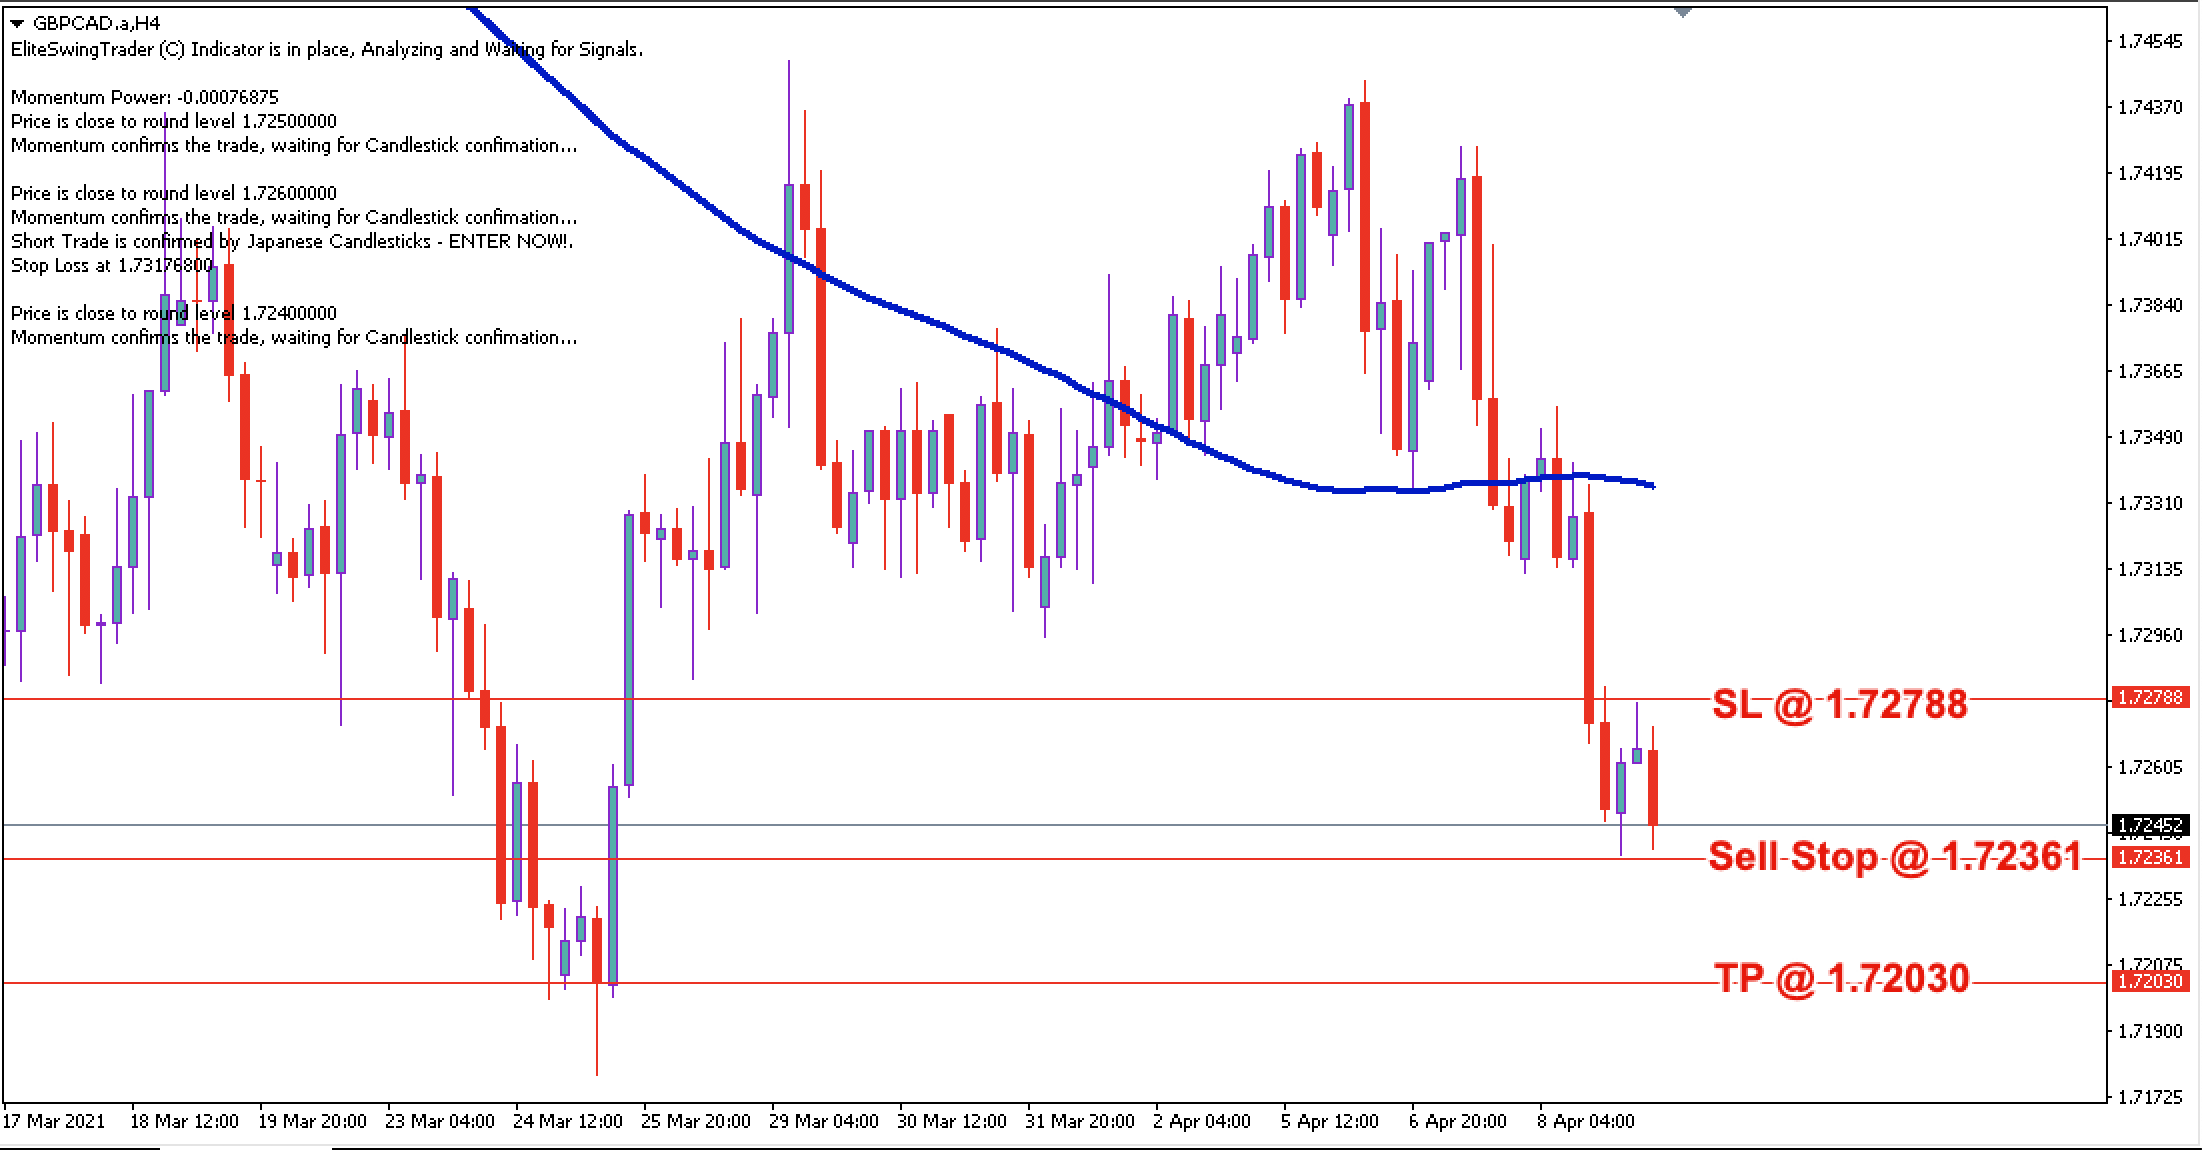 GBP/CAD Daily Price Forecast - 9th April 2021